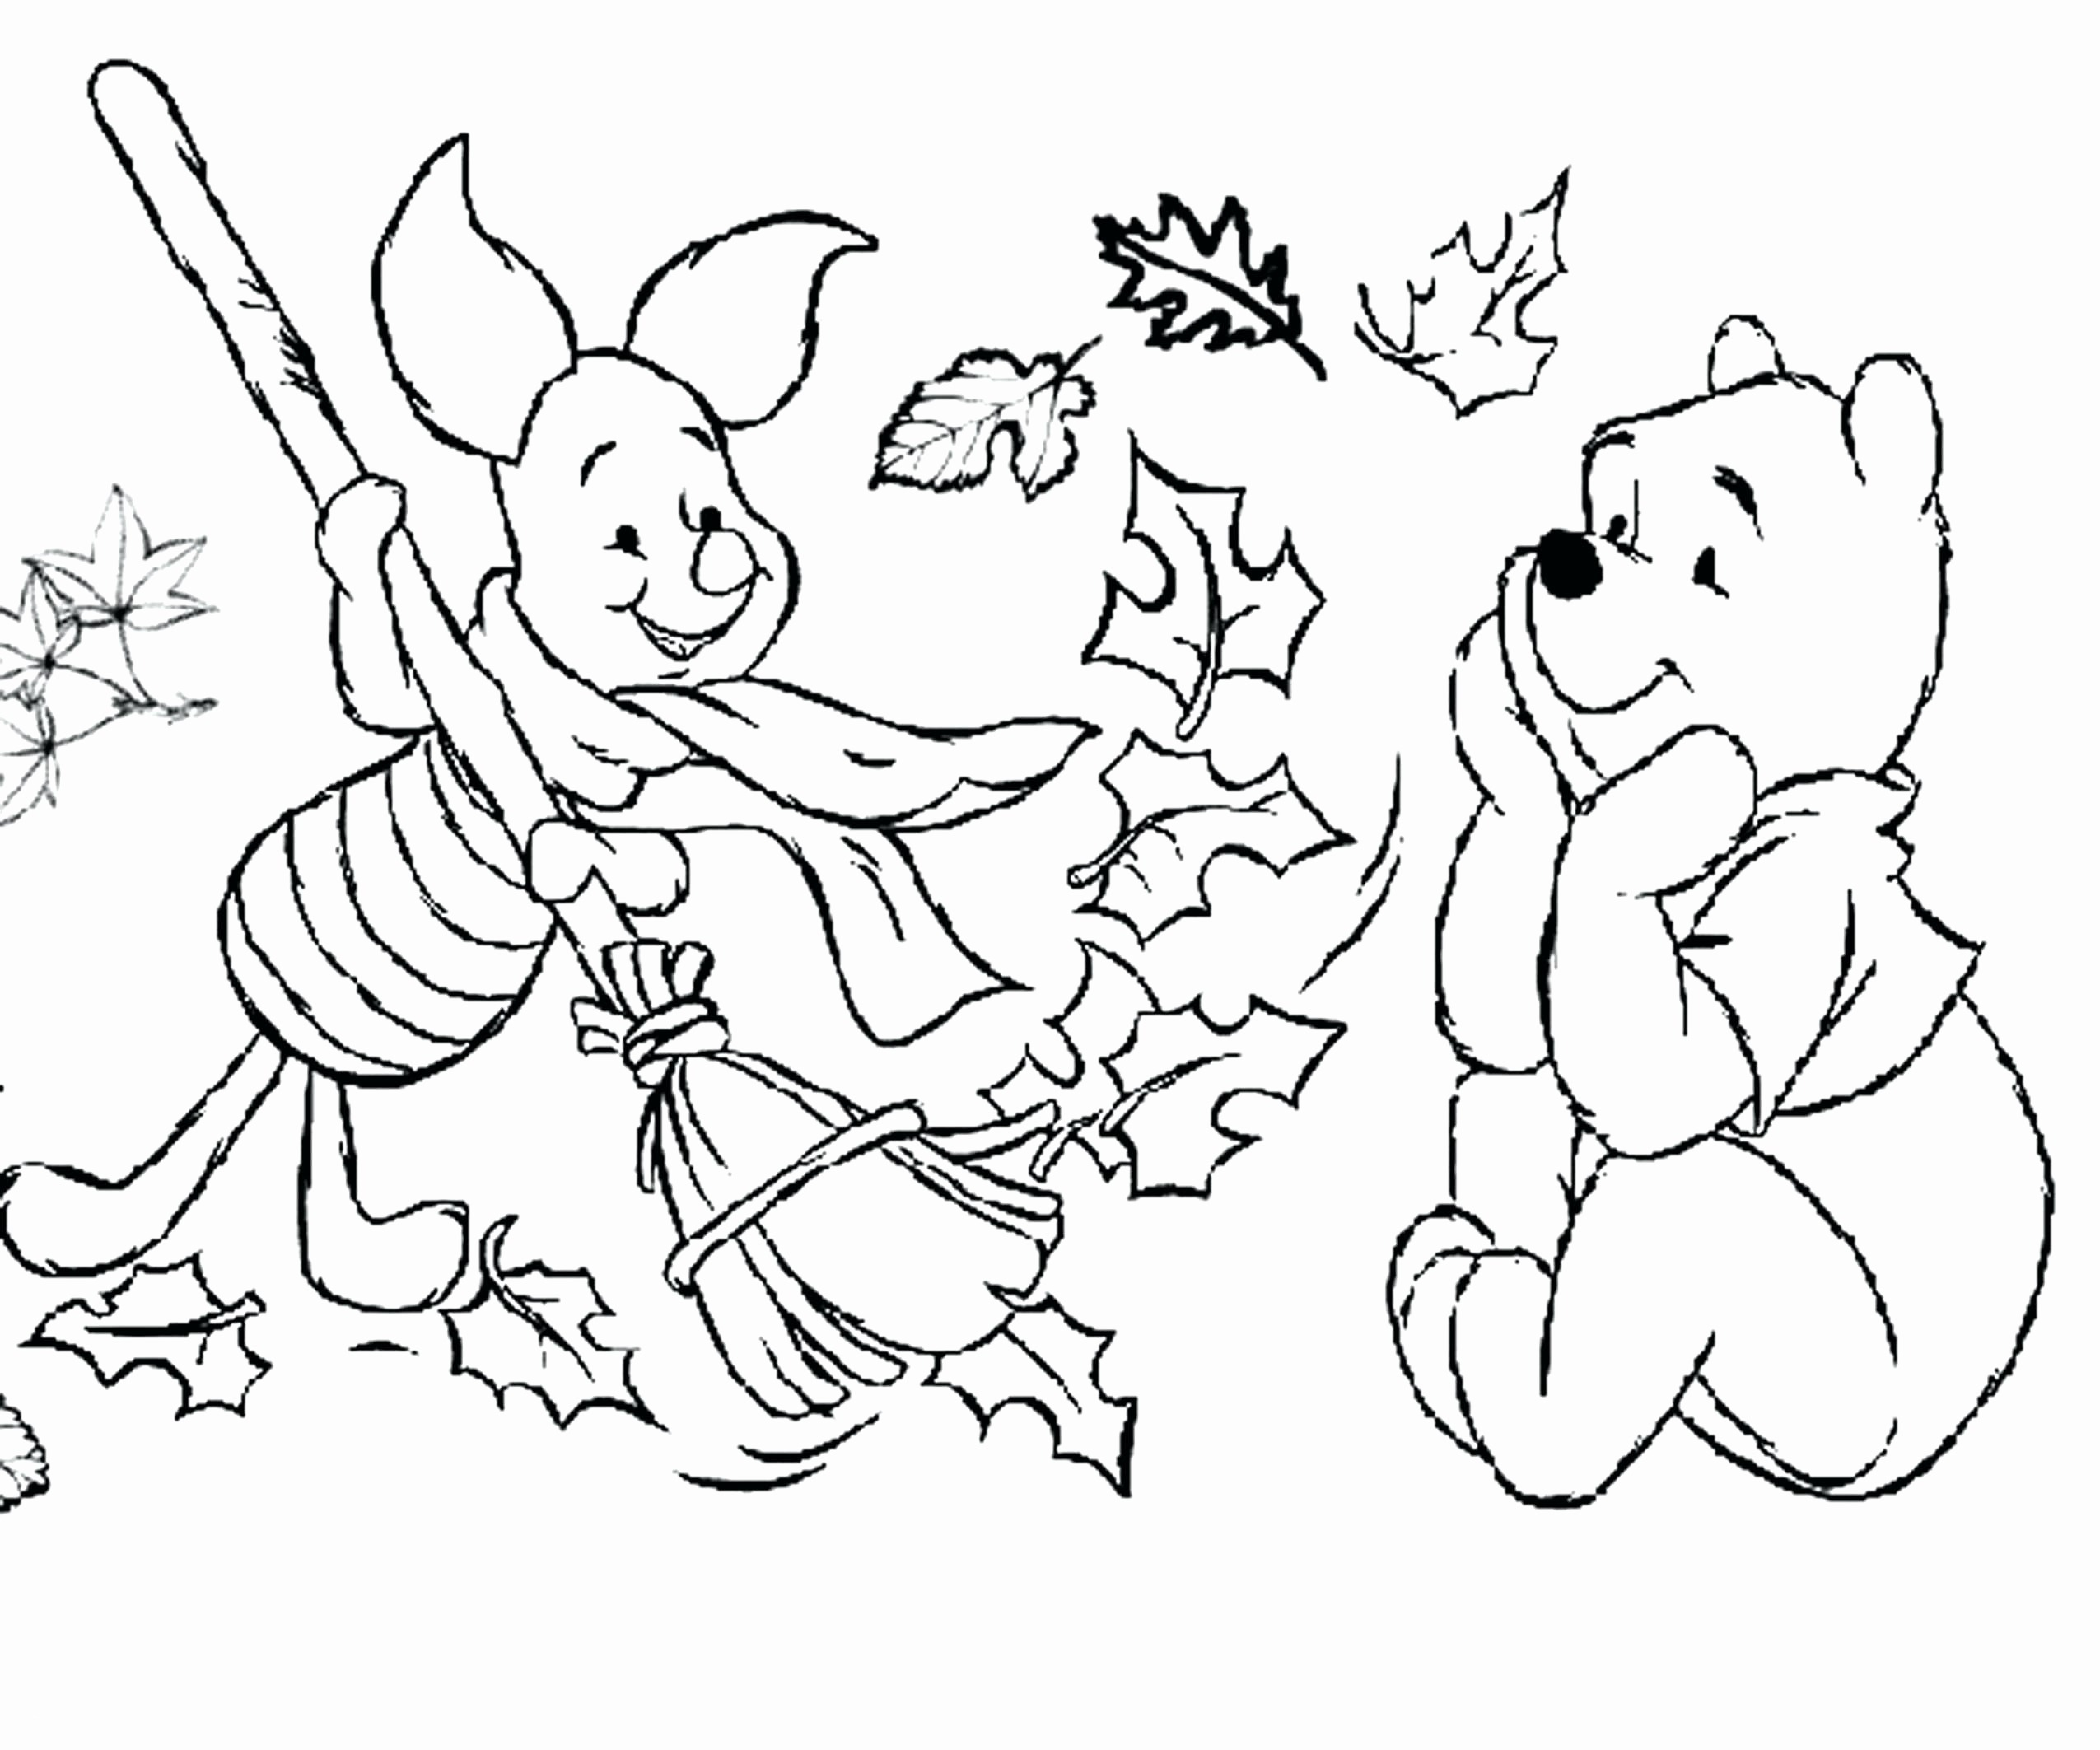 Samson Coloring Pages  to Print 19e - Free For kids